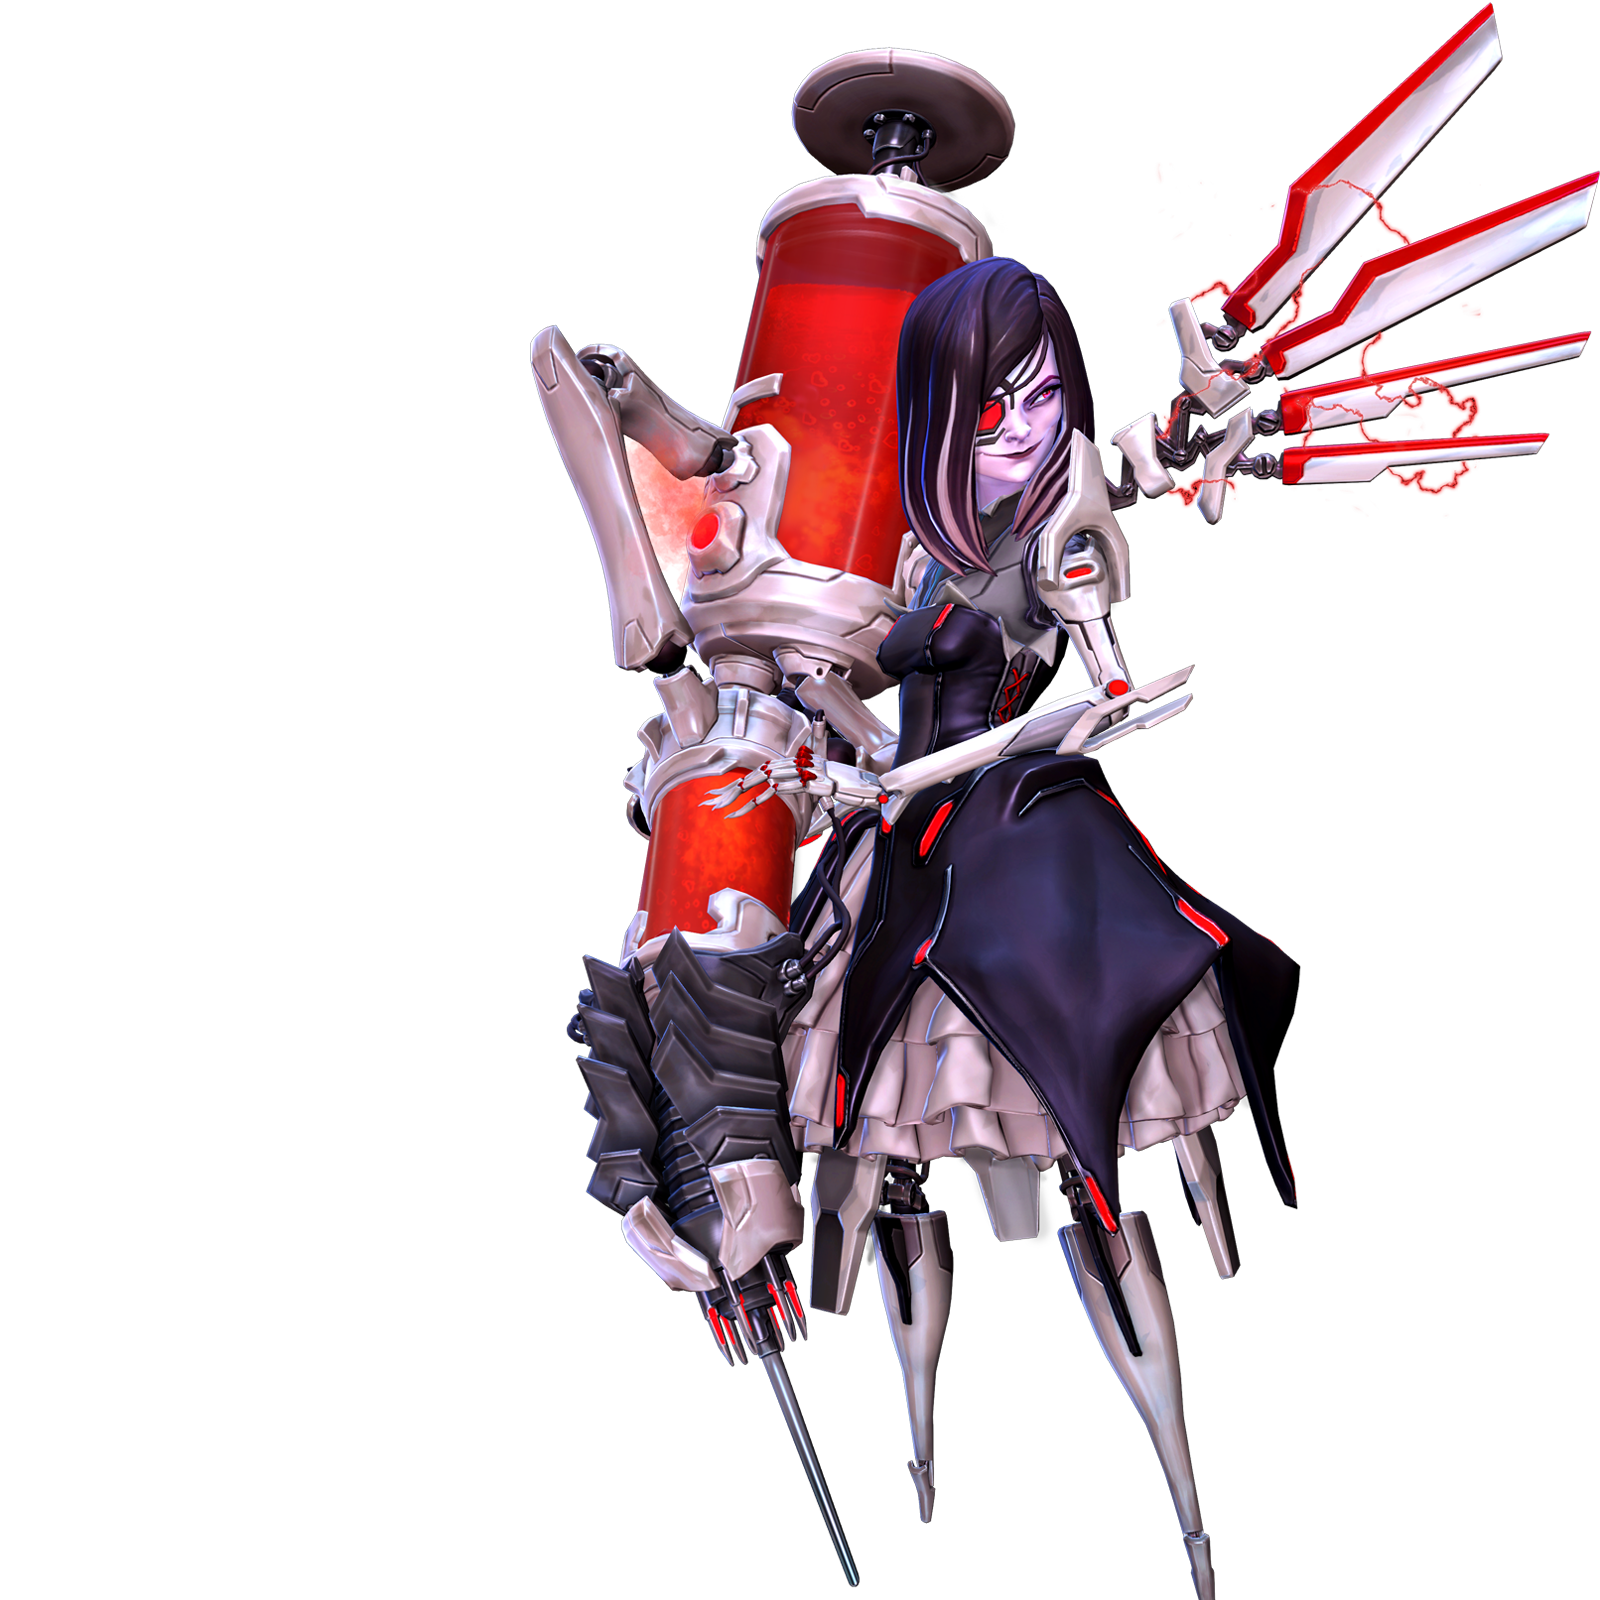 Beatrix battleborn. Syringe clipart injector